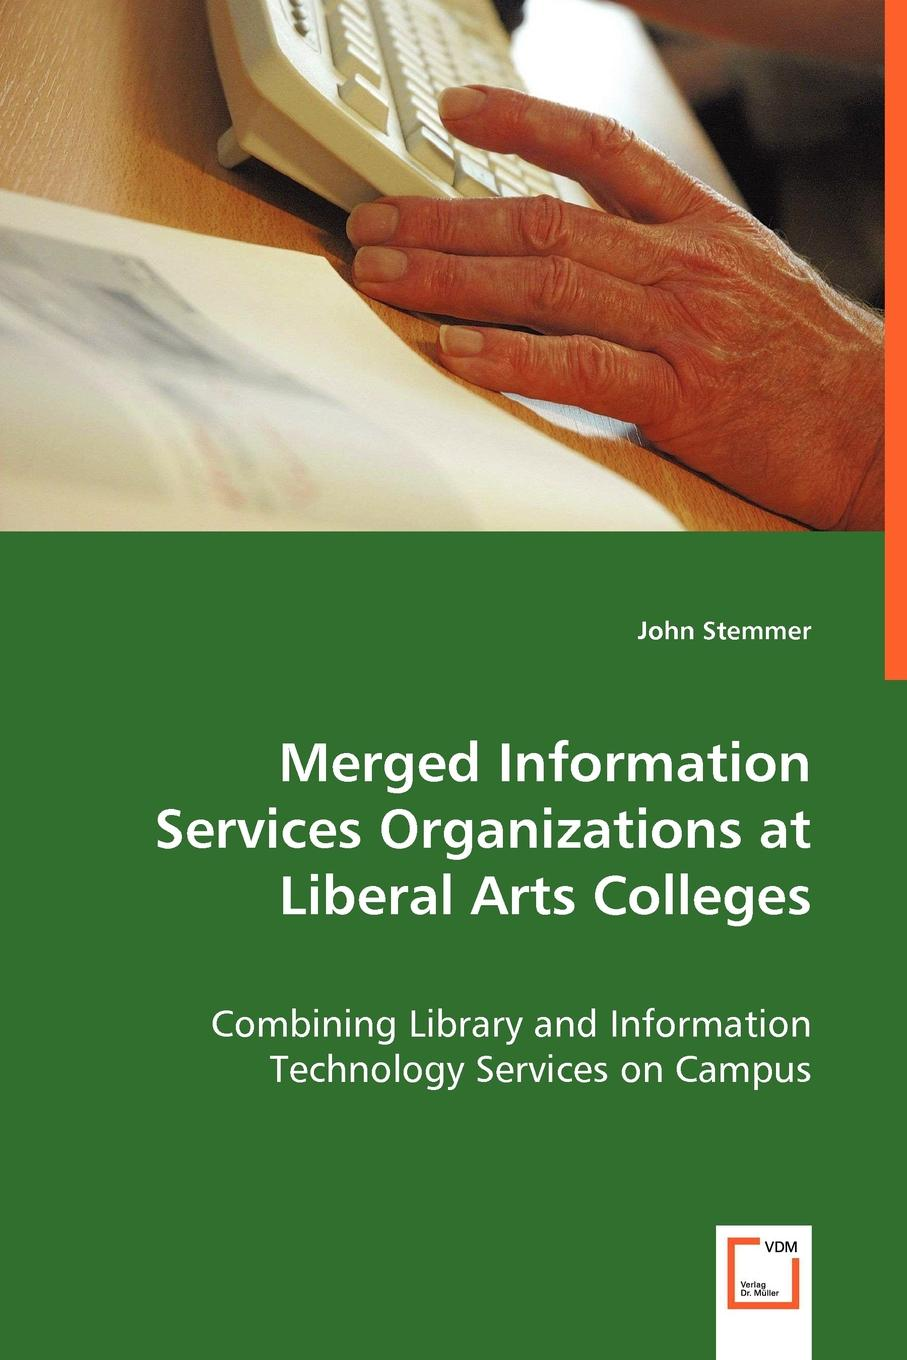 John Stemmer Merged Information Services Organizations at Liberal Arts Colleges effectiveness of information technology on the operations of saccos